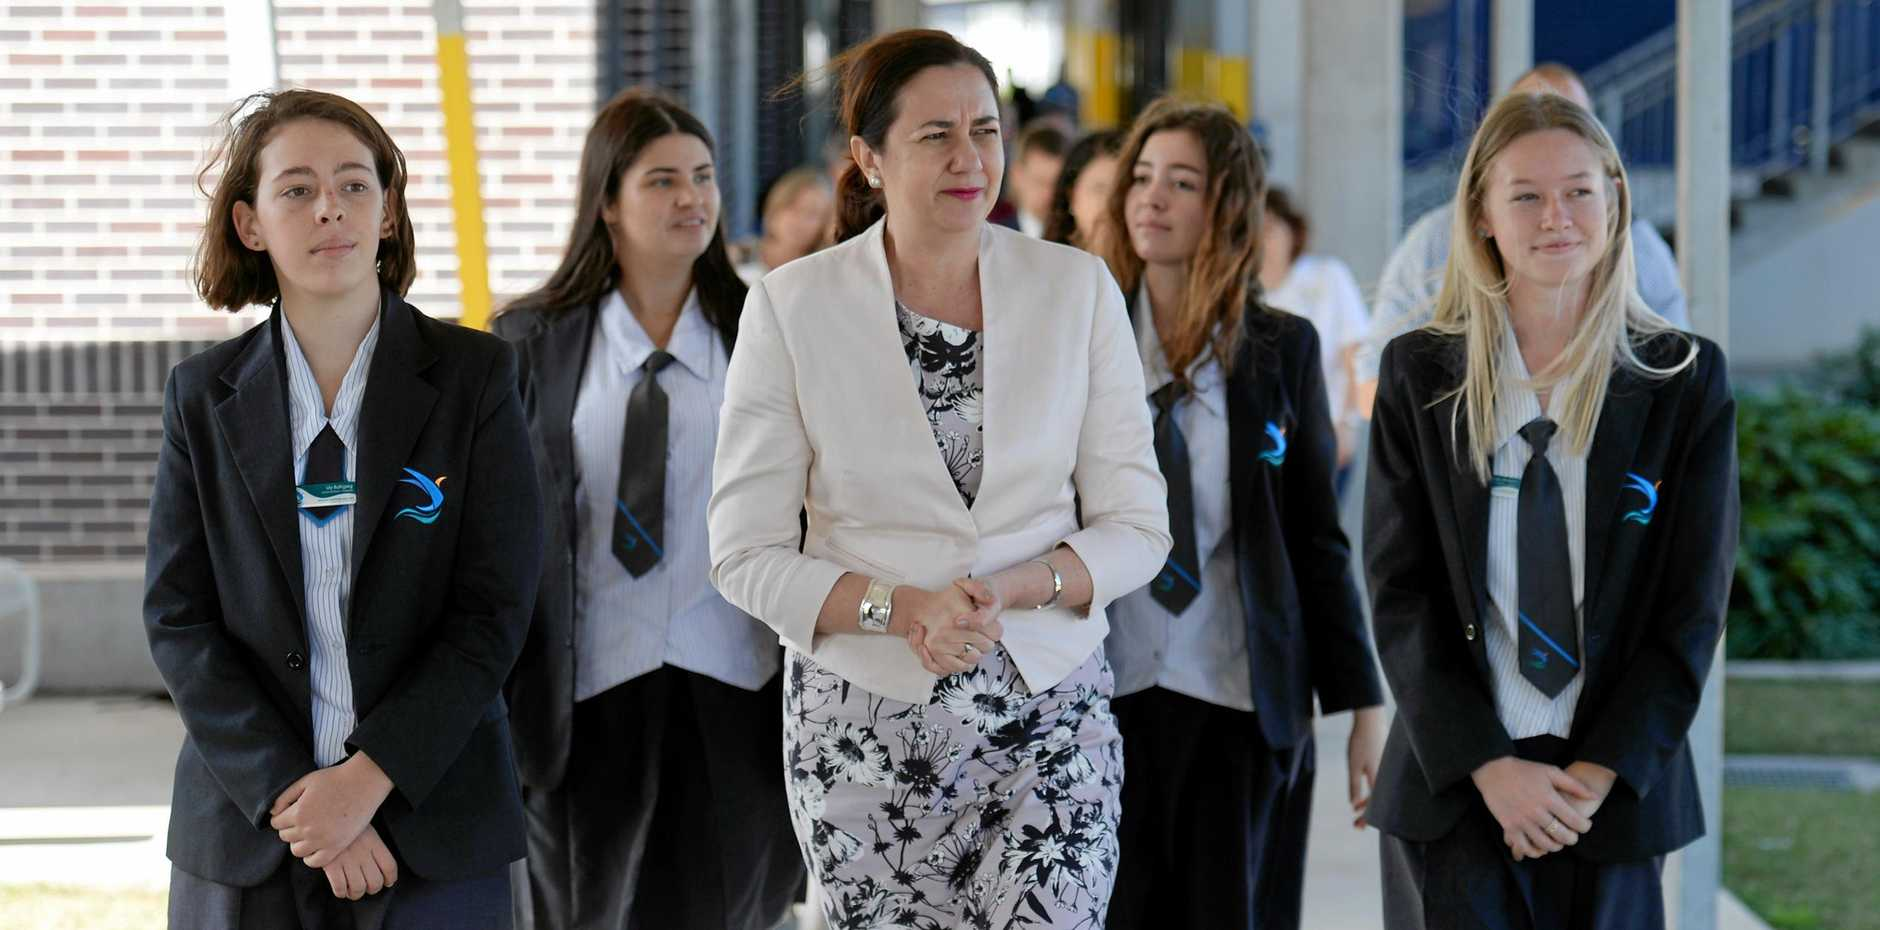 Premier Annastacia Palaszczuk inspect construction of a Performing Arts Centre at Mackay Northern Beaches State High School with students Lily Buttigieg, Madison Friese, Helene Buttigieg and Ruby Sharam